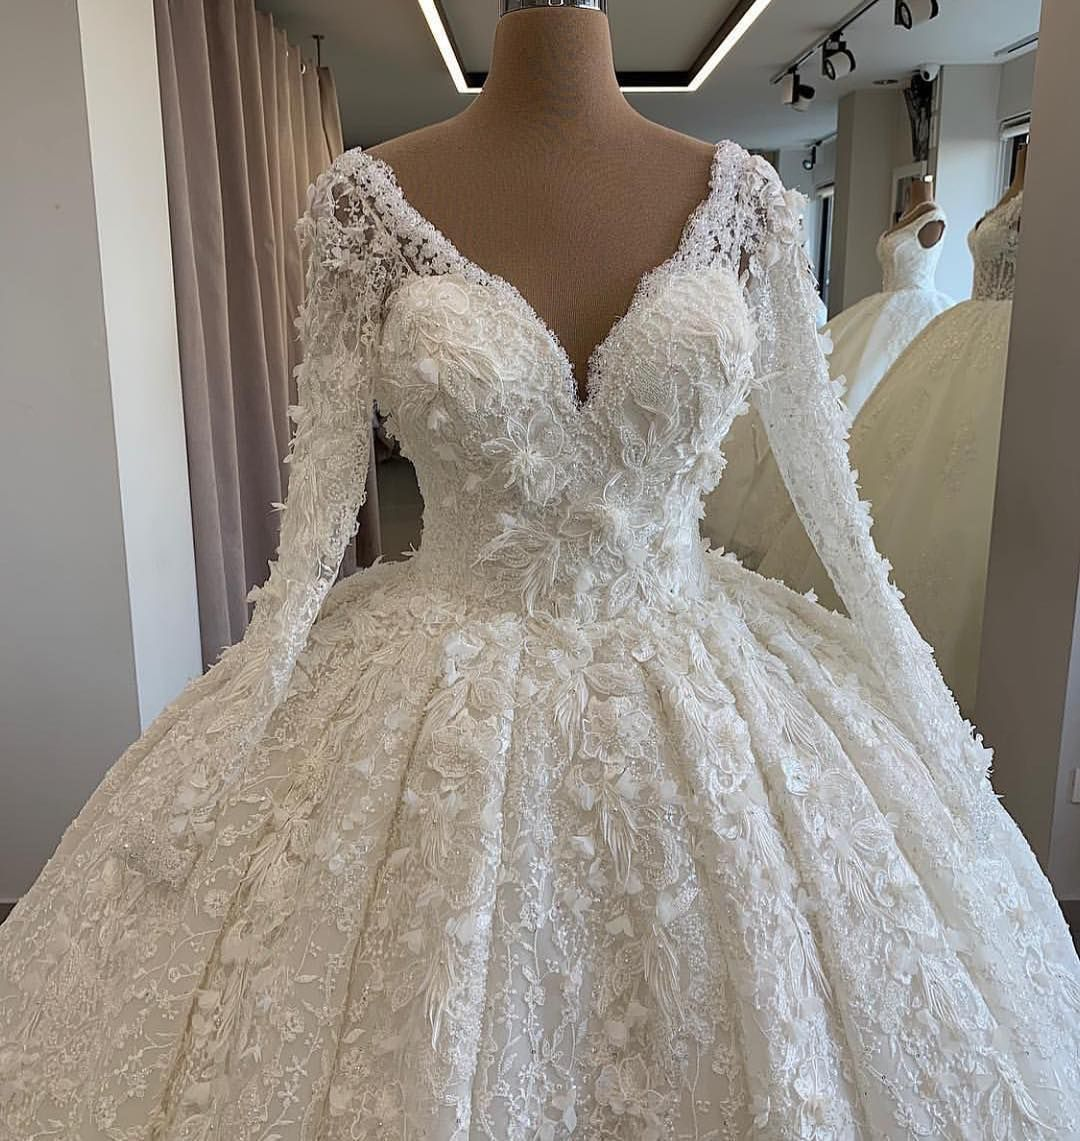 Made to order #wedding #gowns like this can be created as pictured or with any changes.  You can also modify any of our own #bridal #designs.  We have specialized in affordable #custom #weddingdresses since 1996.    https://buff.ly/2sdy8fP  . . .